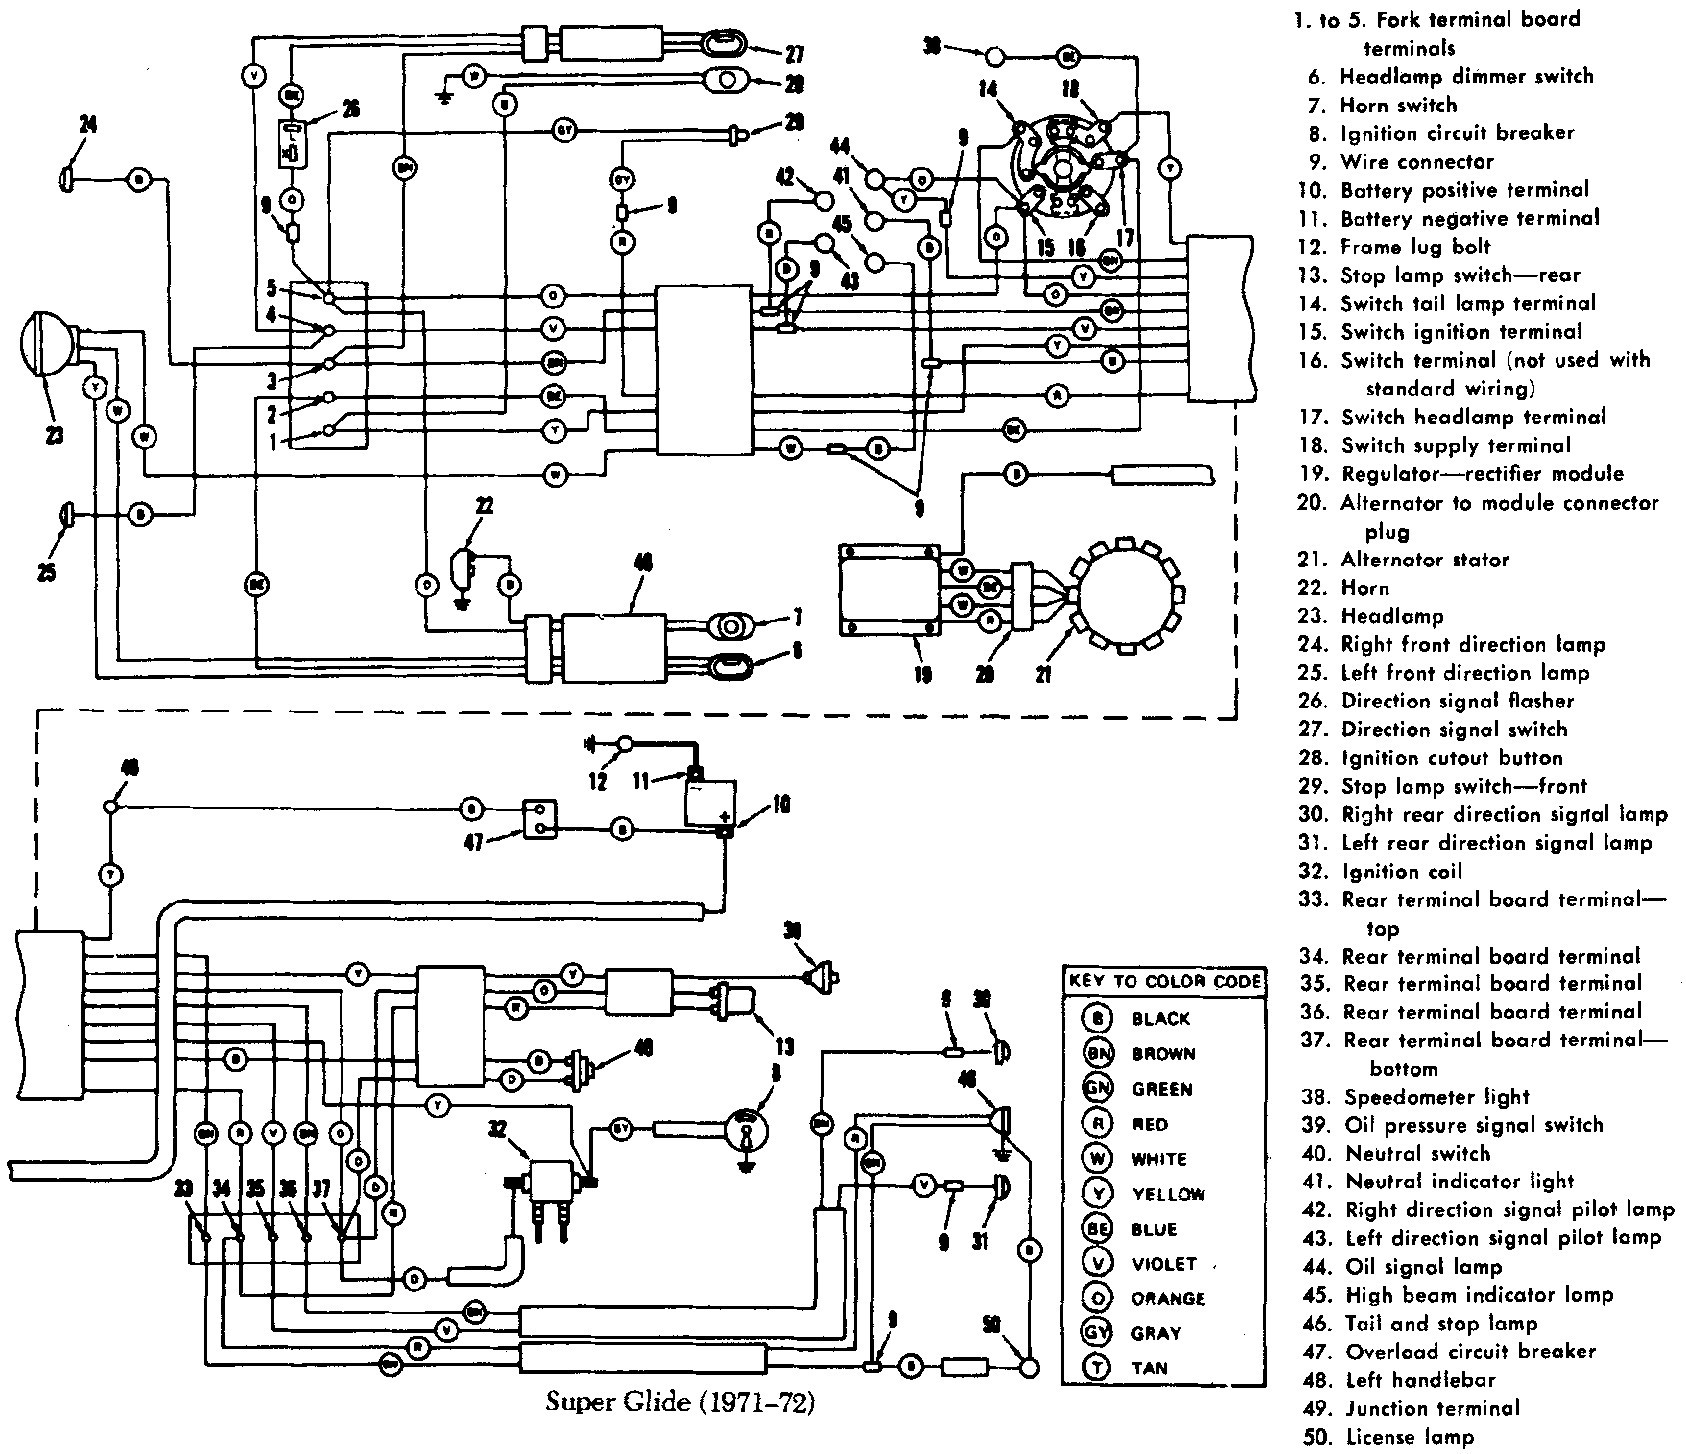 hight resolution of harley shovelhead wiring harness diagram as well ignition coil harley davidson wiring harness diagram wp105